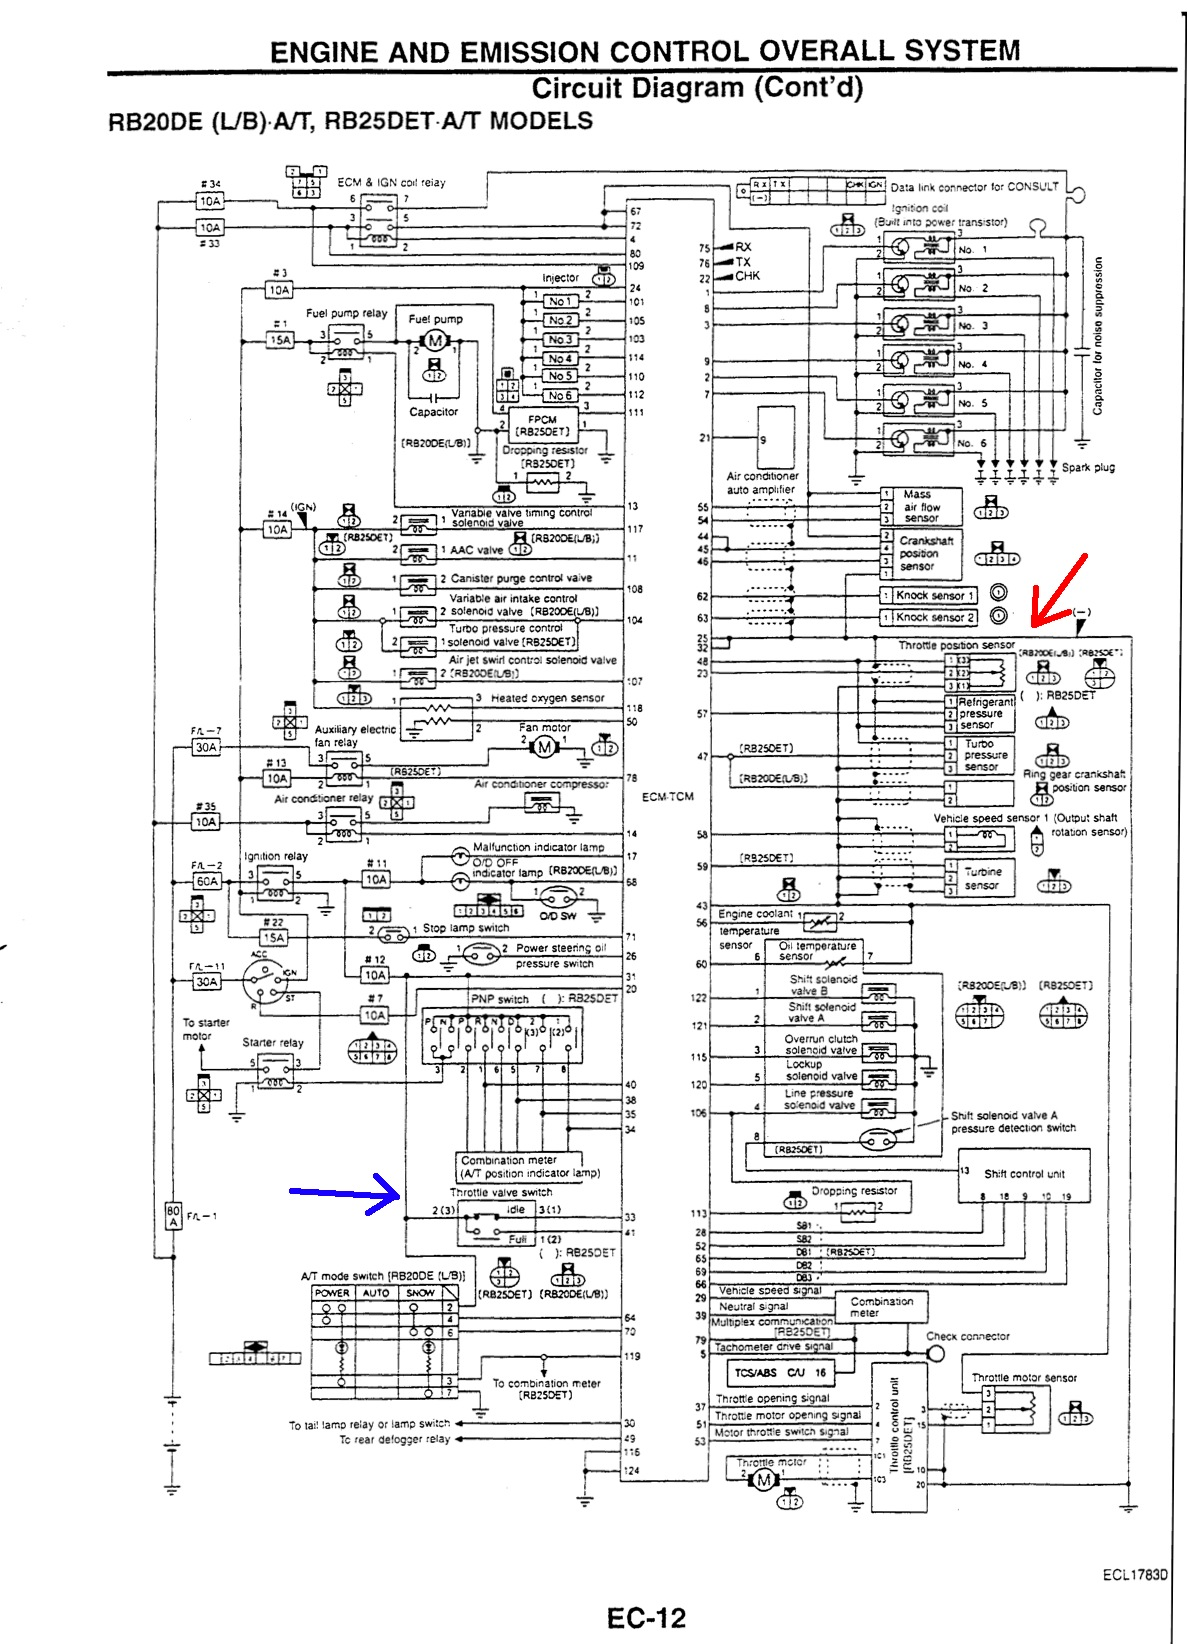 1972 Nissan Skyline Wiring Diagram Trusted wiring diagrams